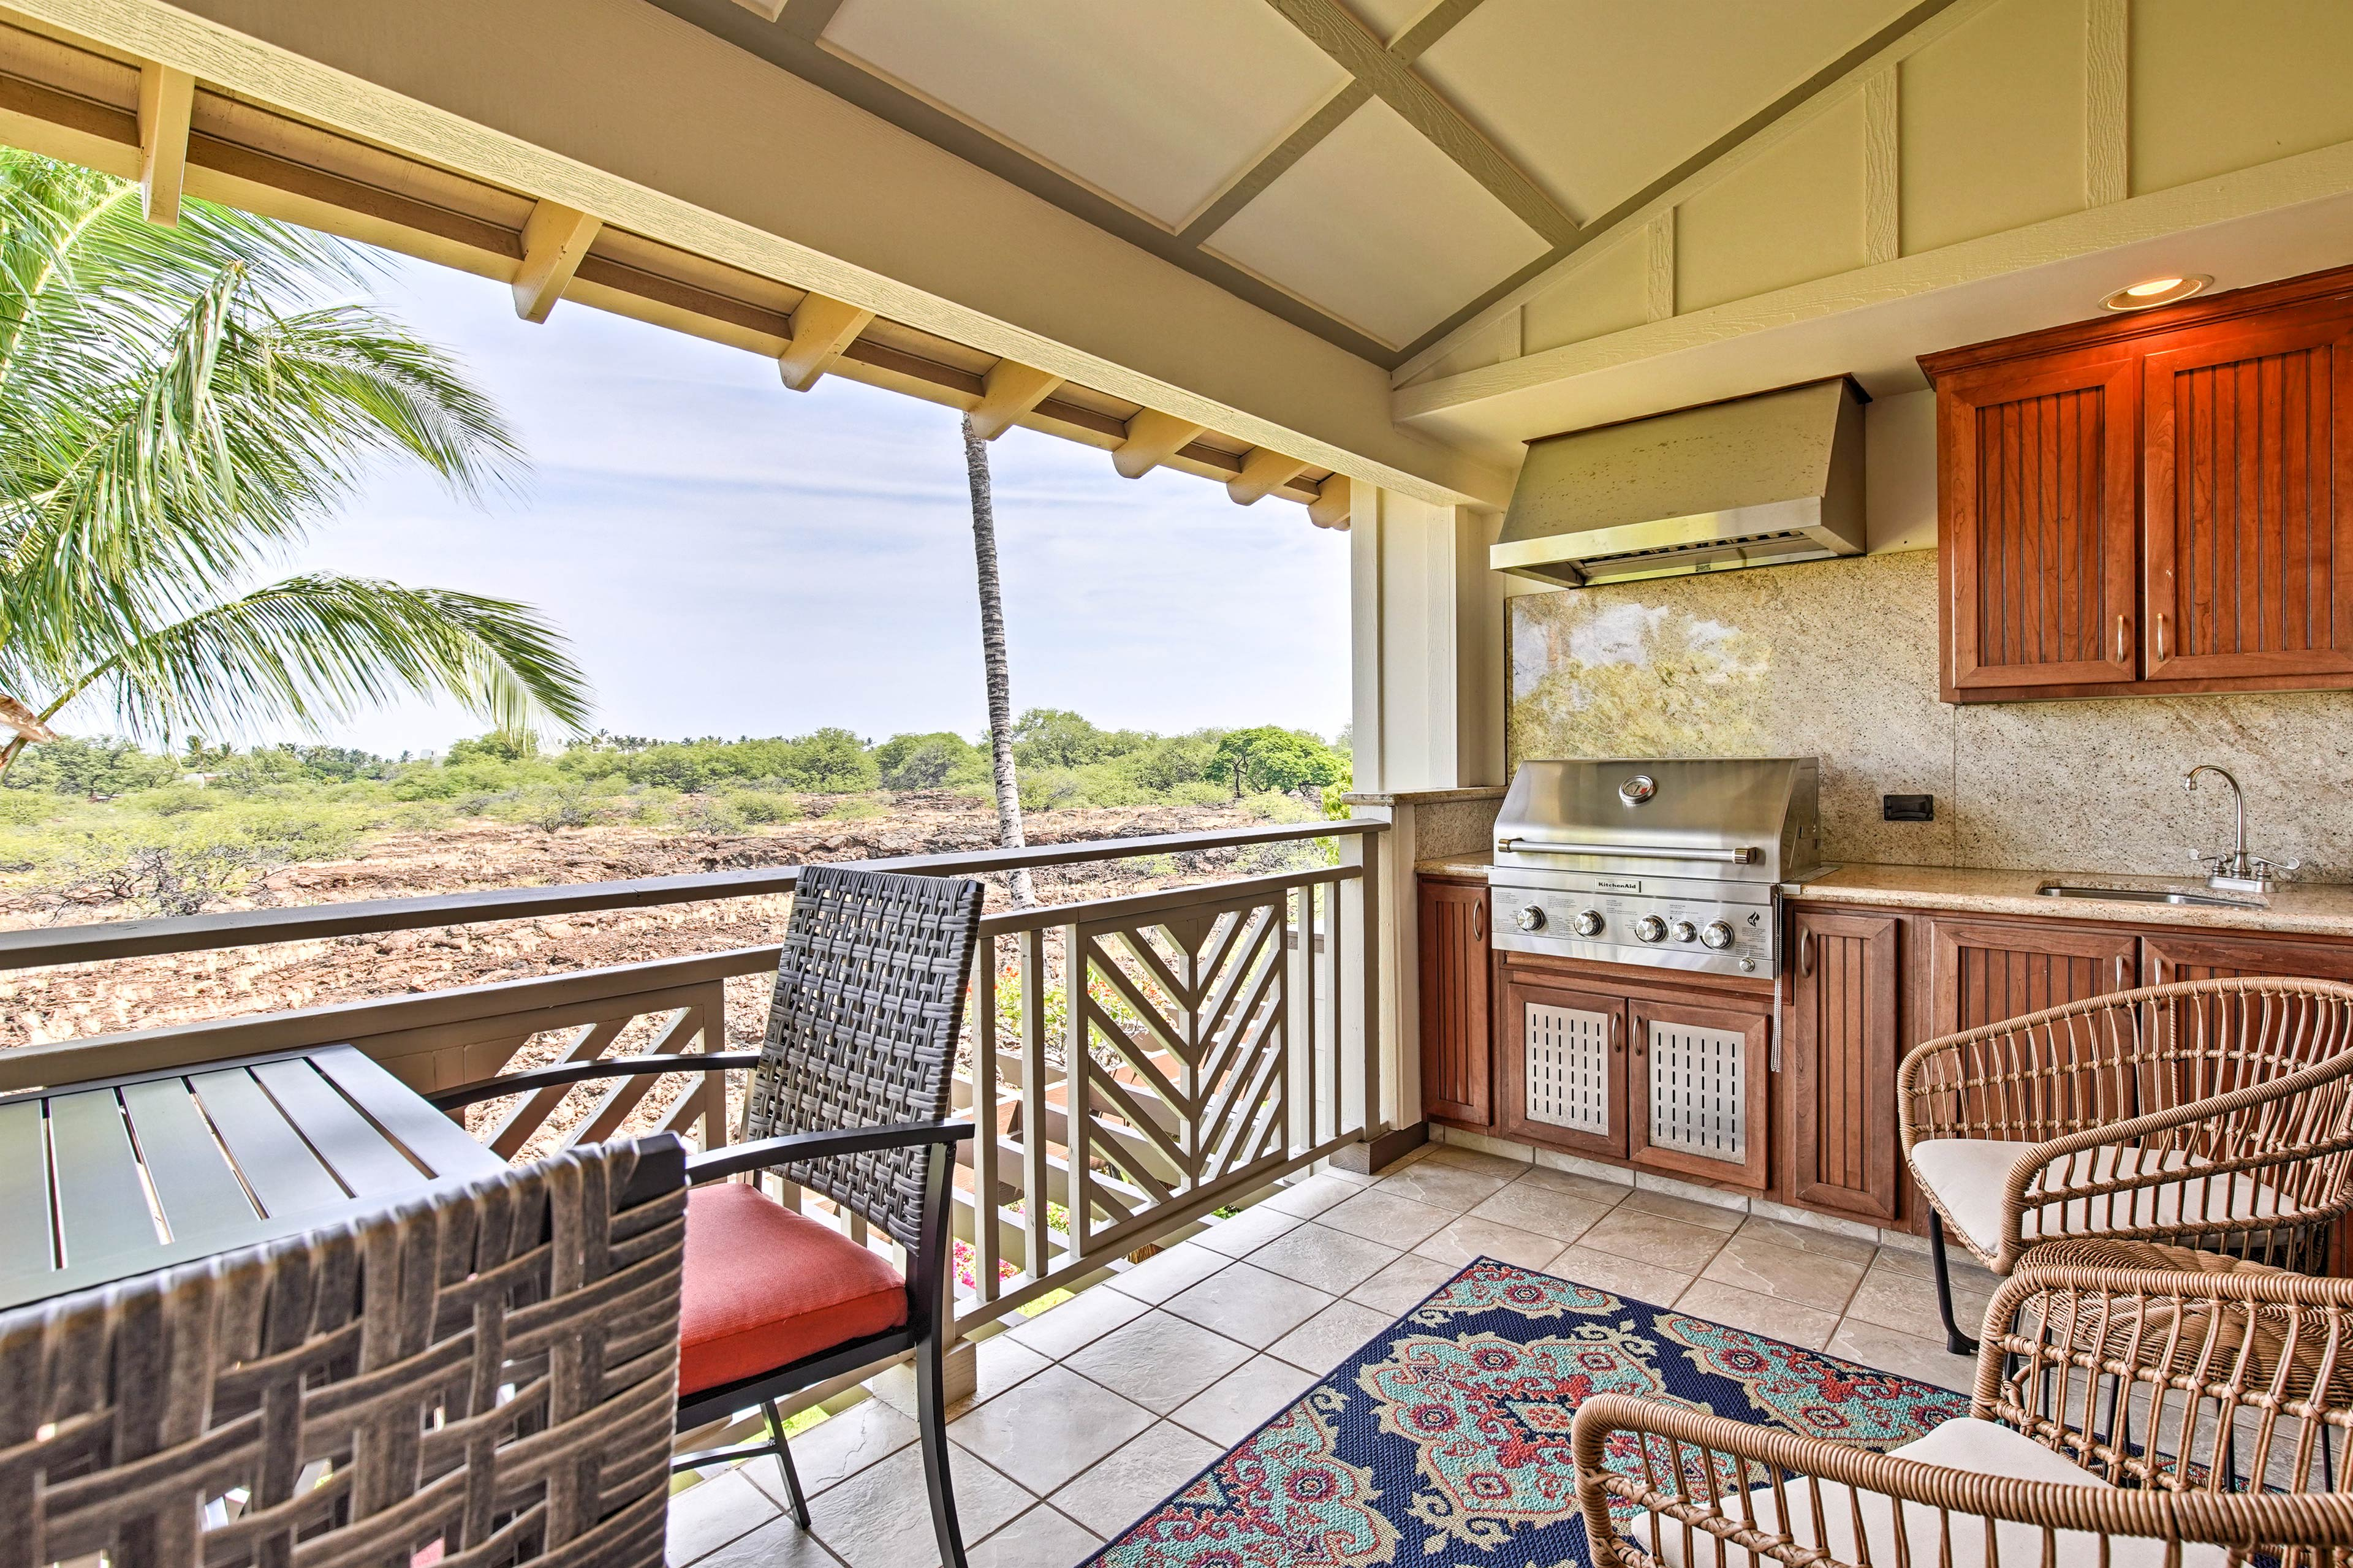 The covered lanai is the ideal spot with a gas grill, comfy furniture, and views